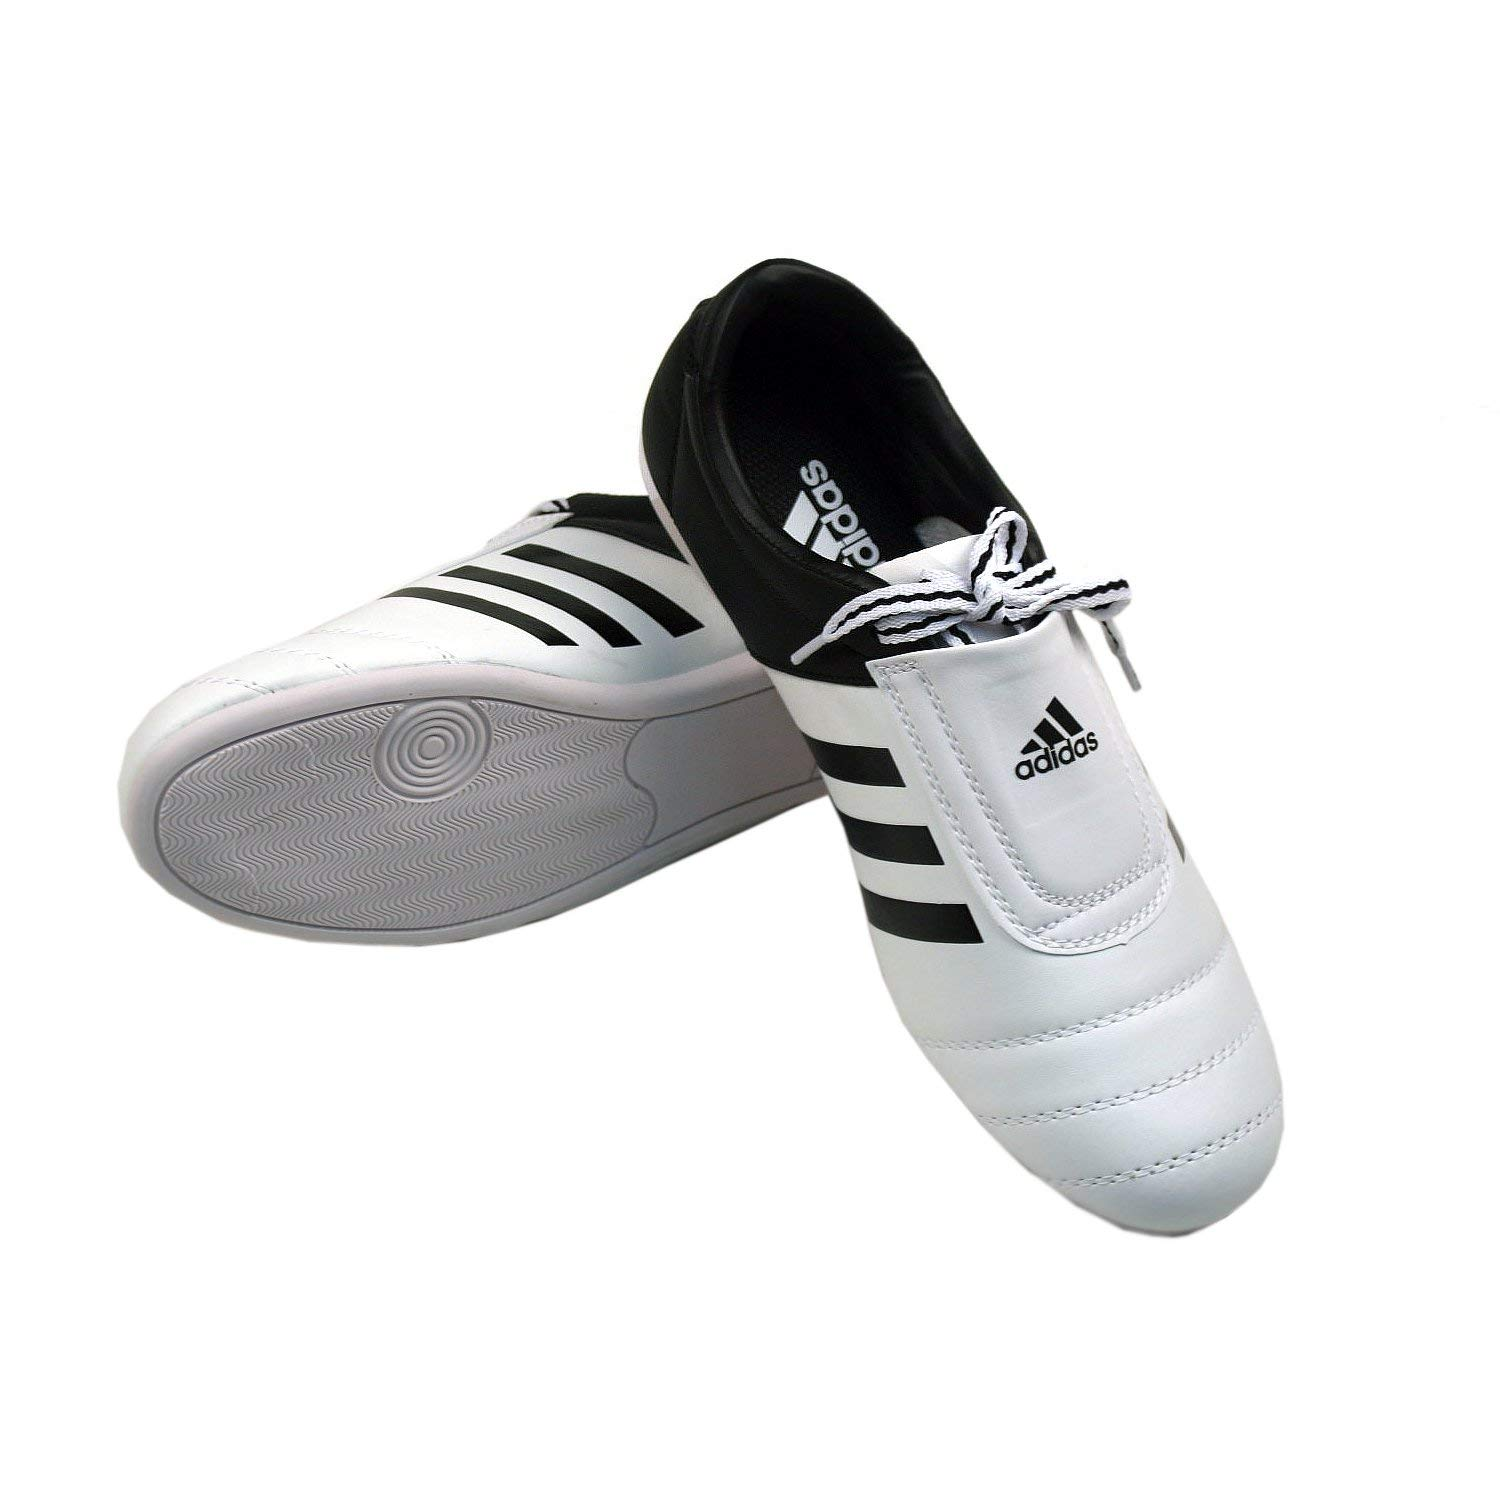 adidas KICK Shoes Martial Arts Sneaker White with Black Stripes (10) by adidas